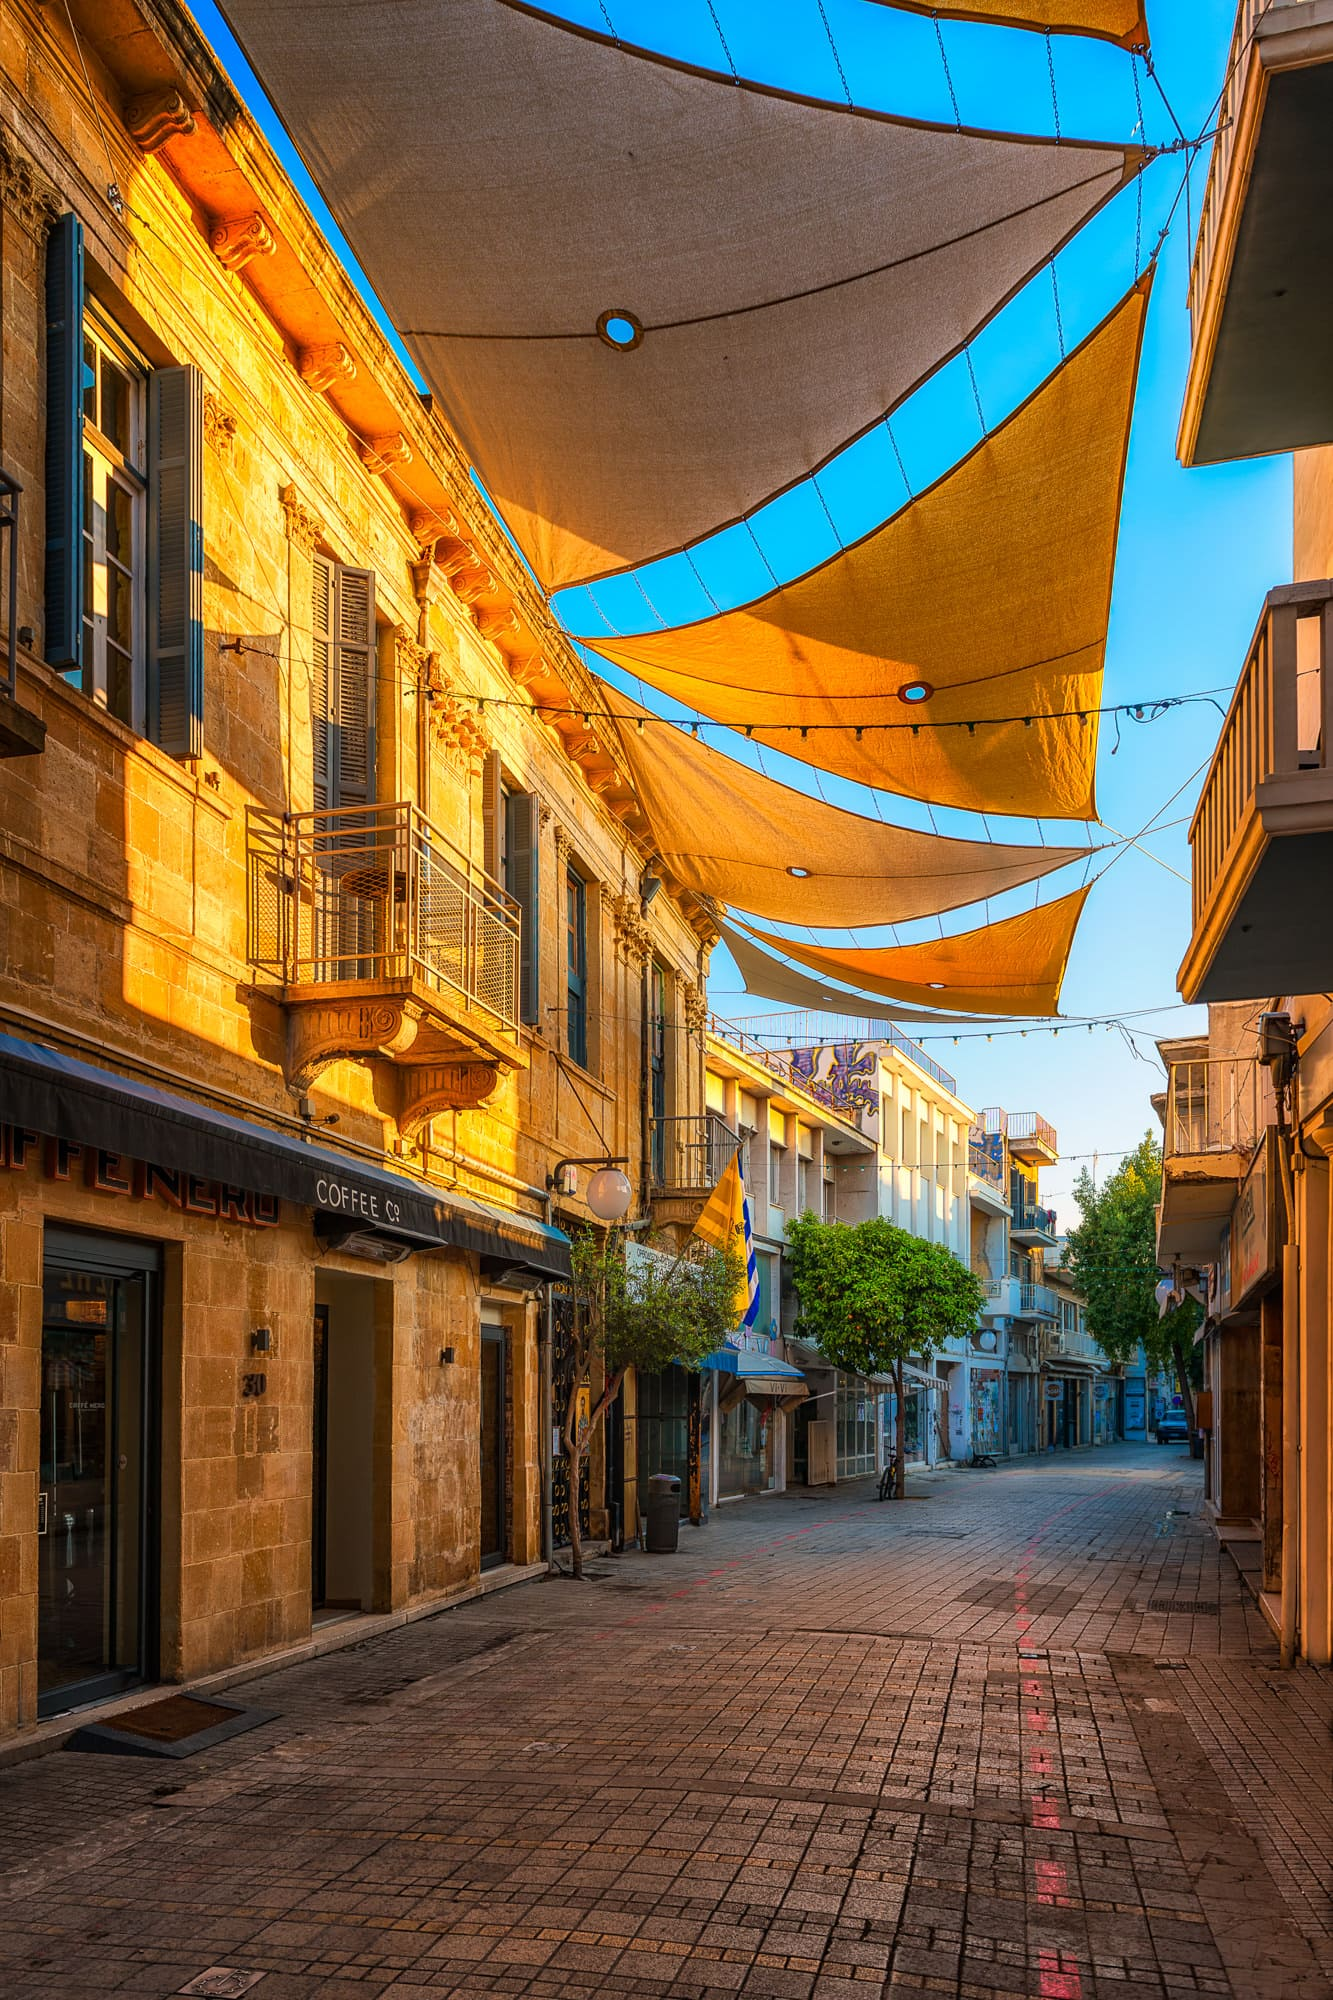 Ledra Street In The Centre Of Nicosia | Cyprus